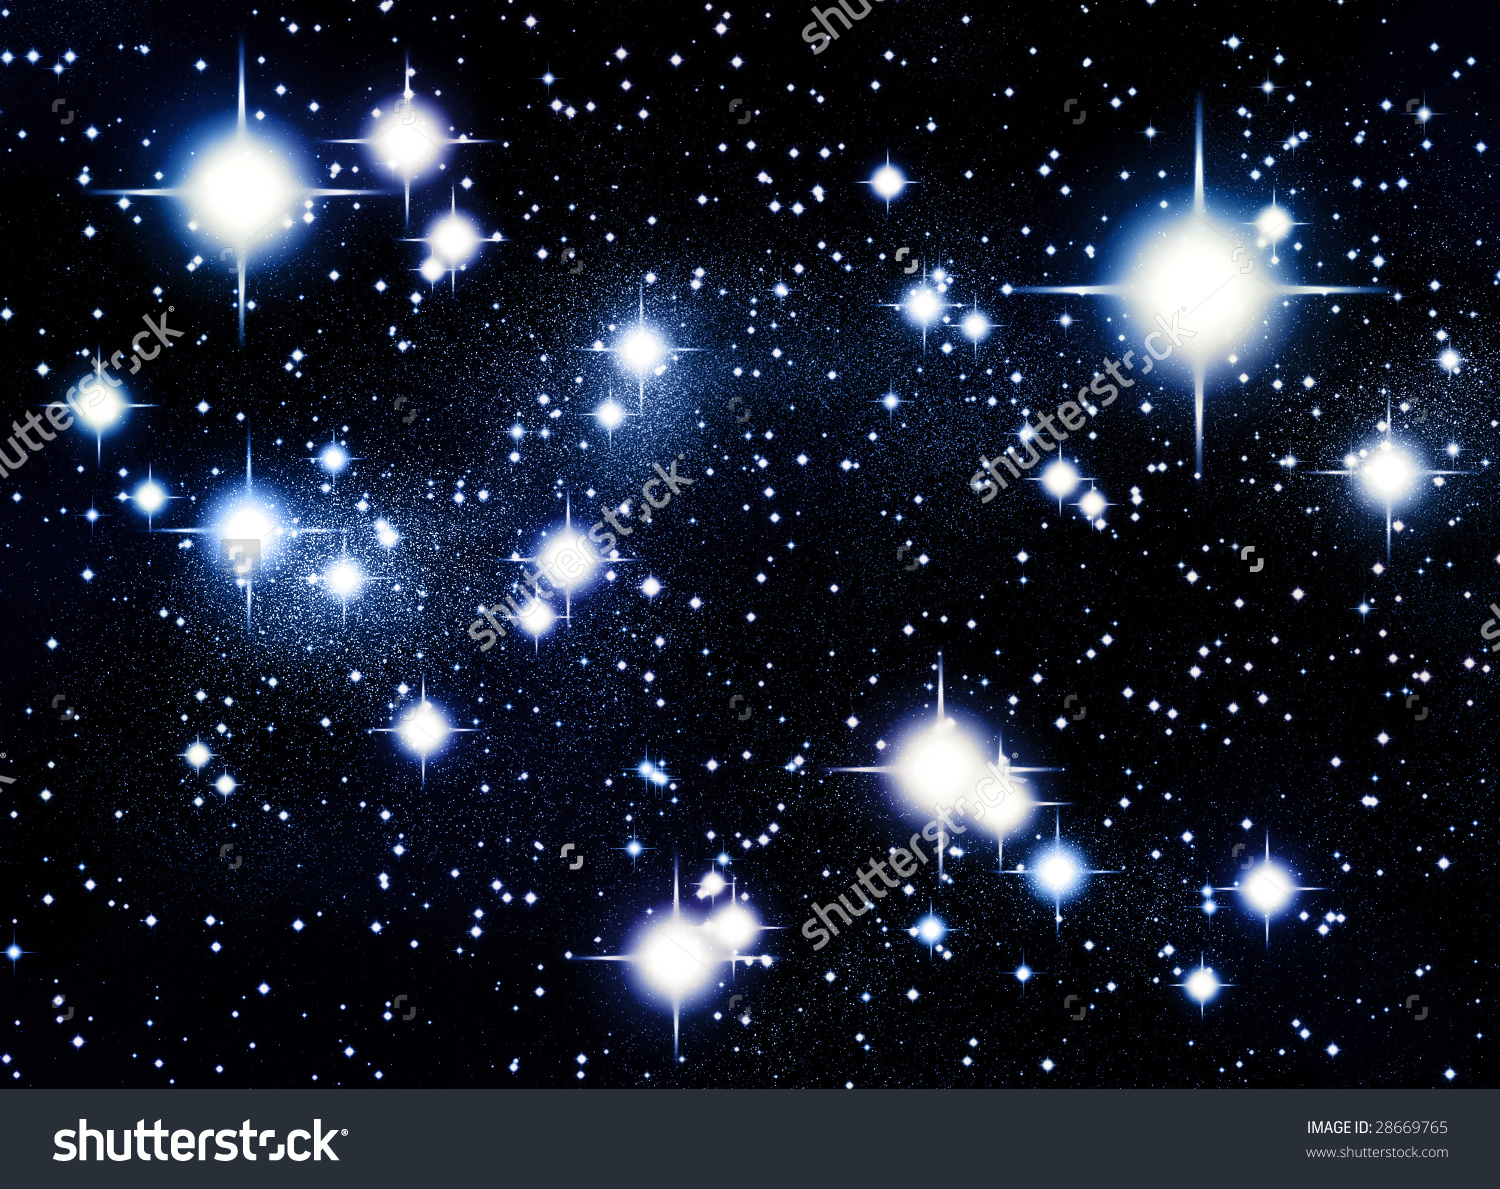 Stars in the Universe Clip Art.